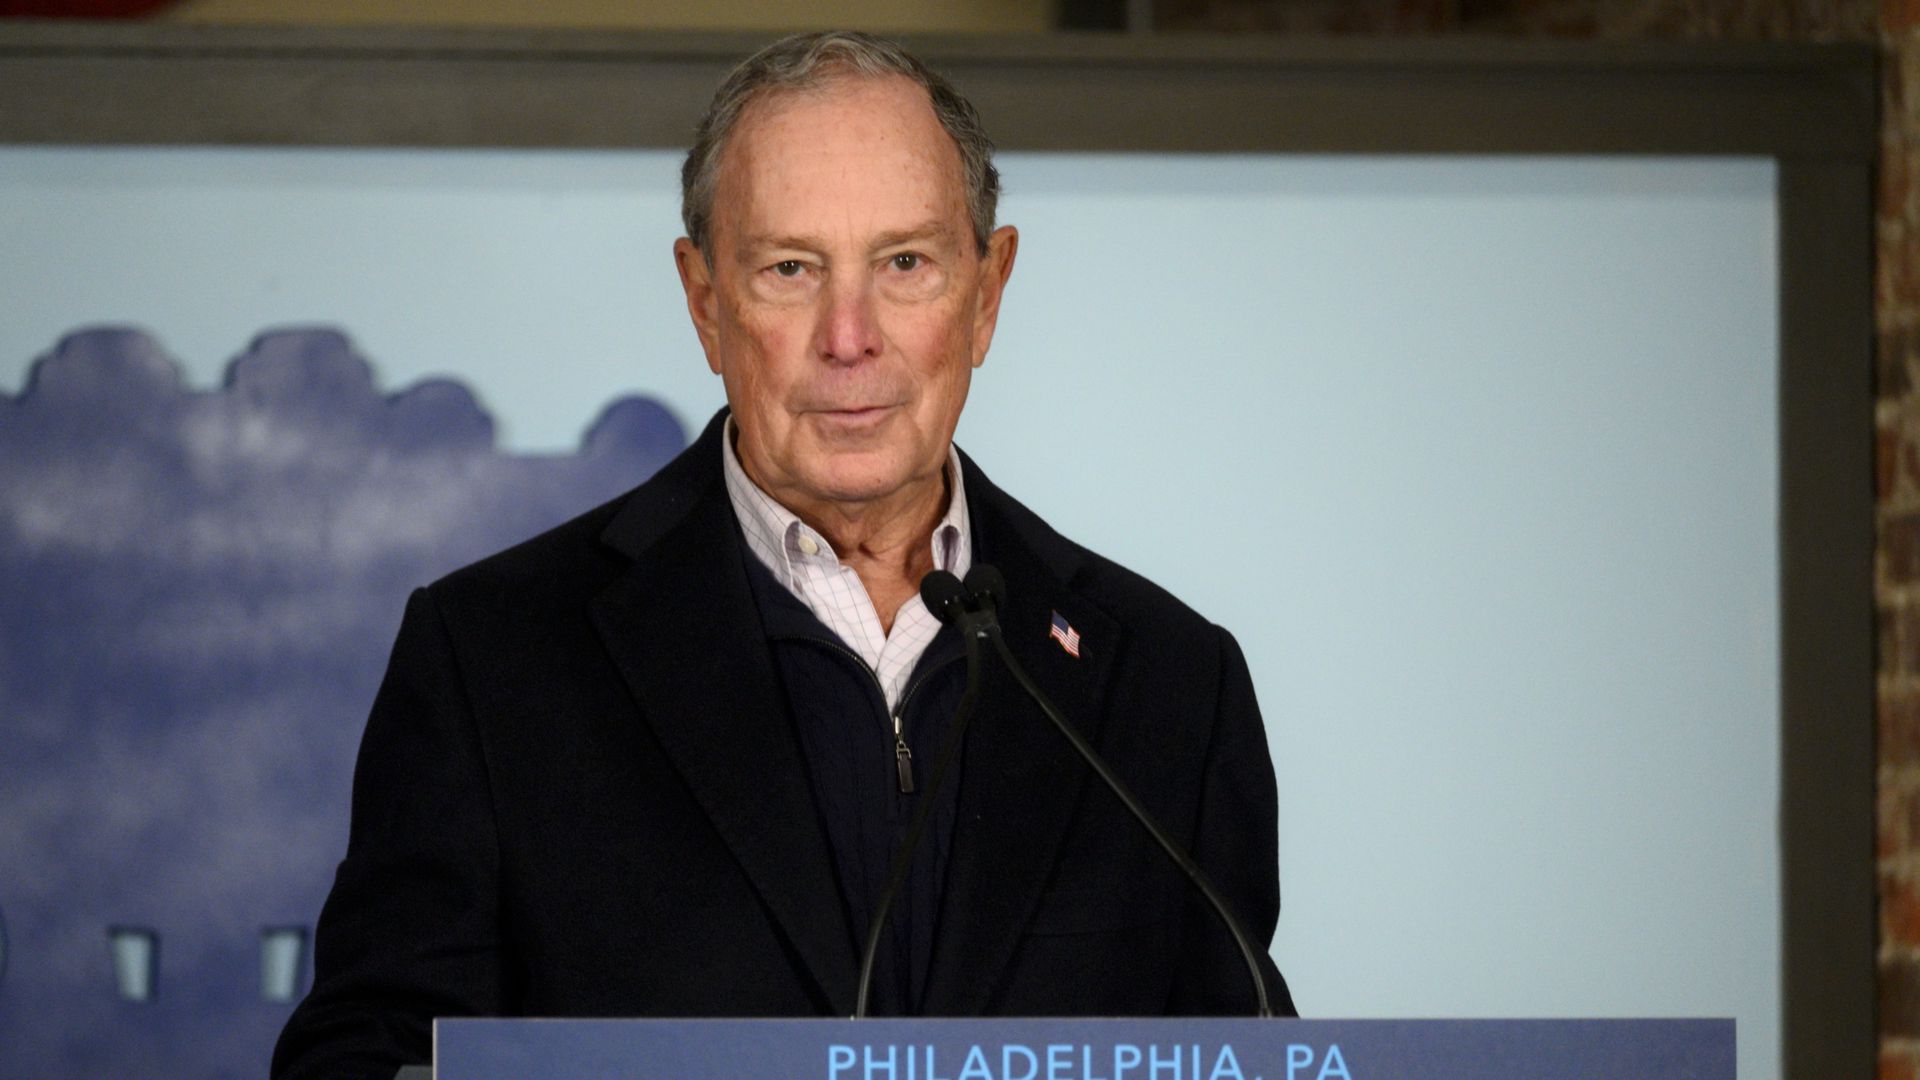 Mike Bloomberg campaigning in Philadelphia